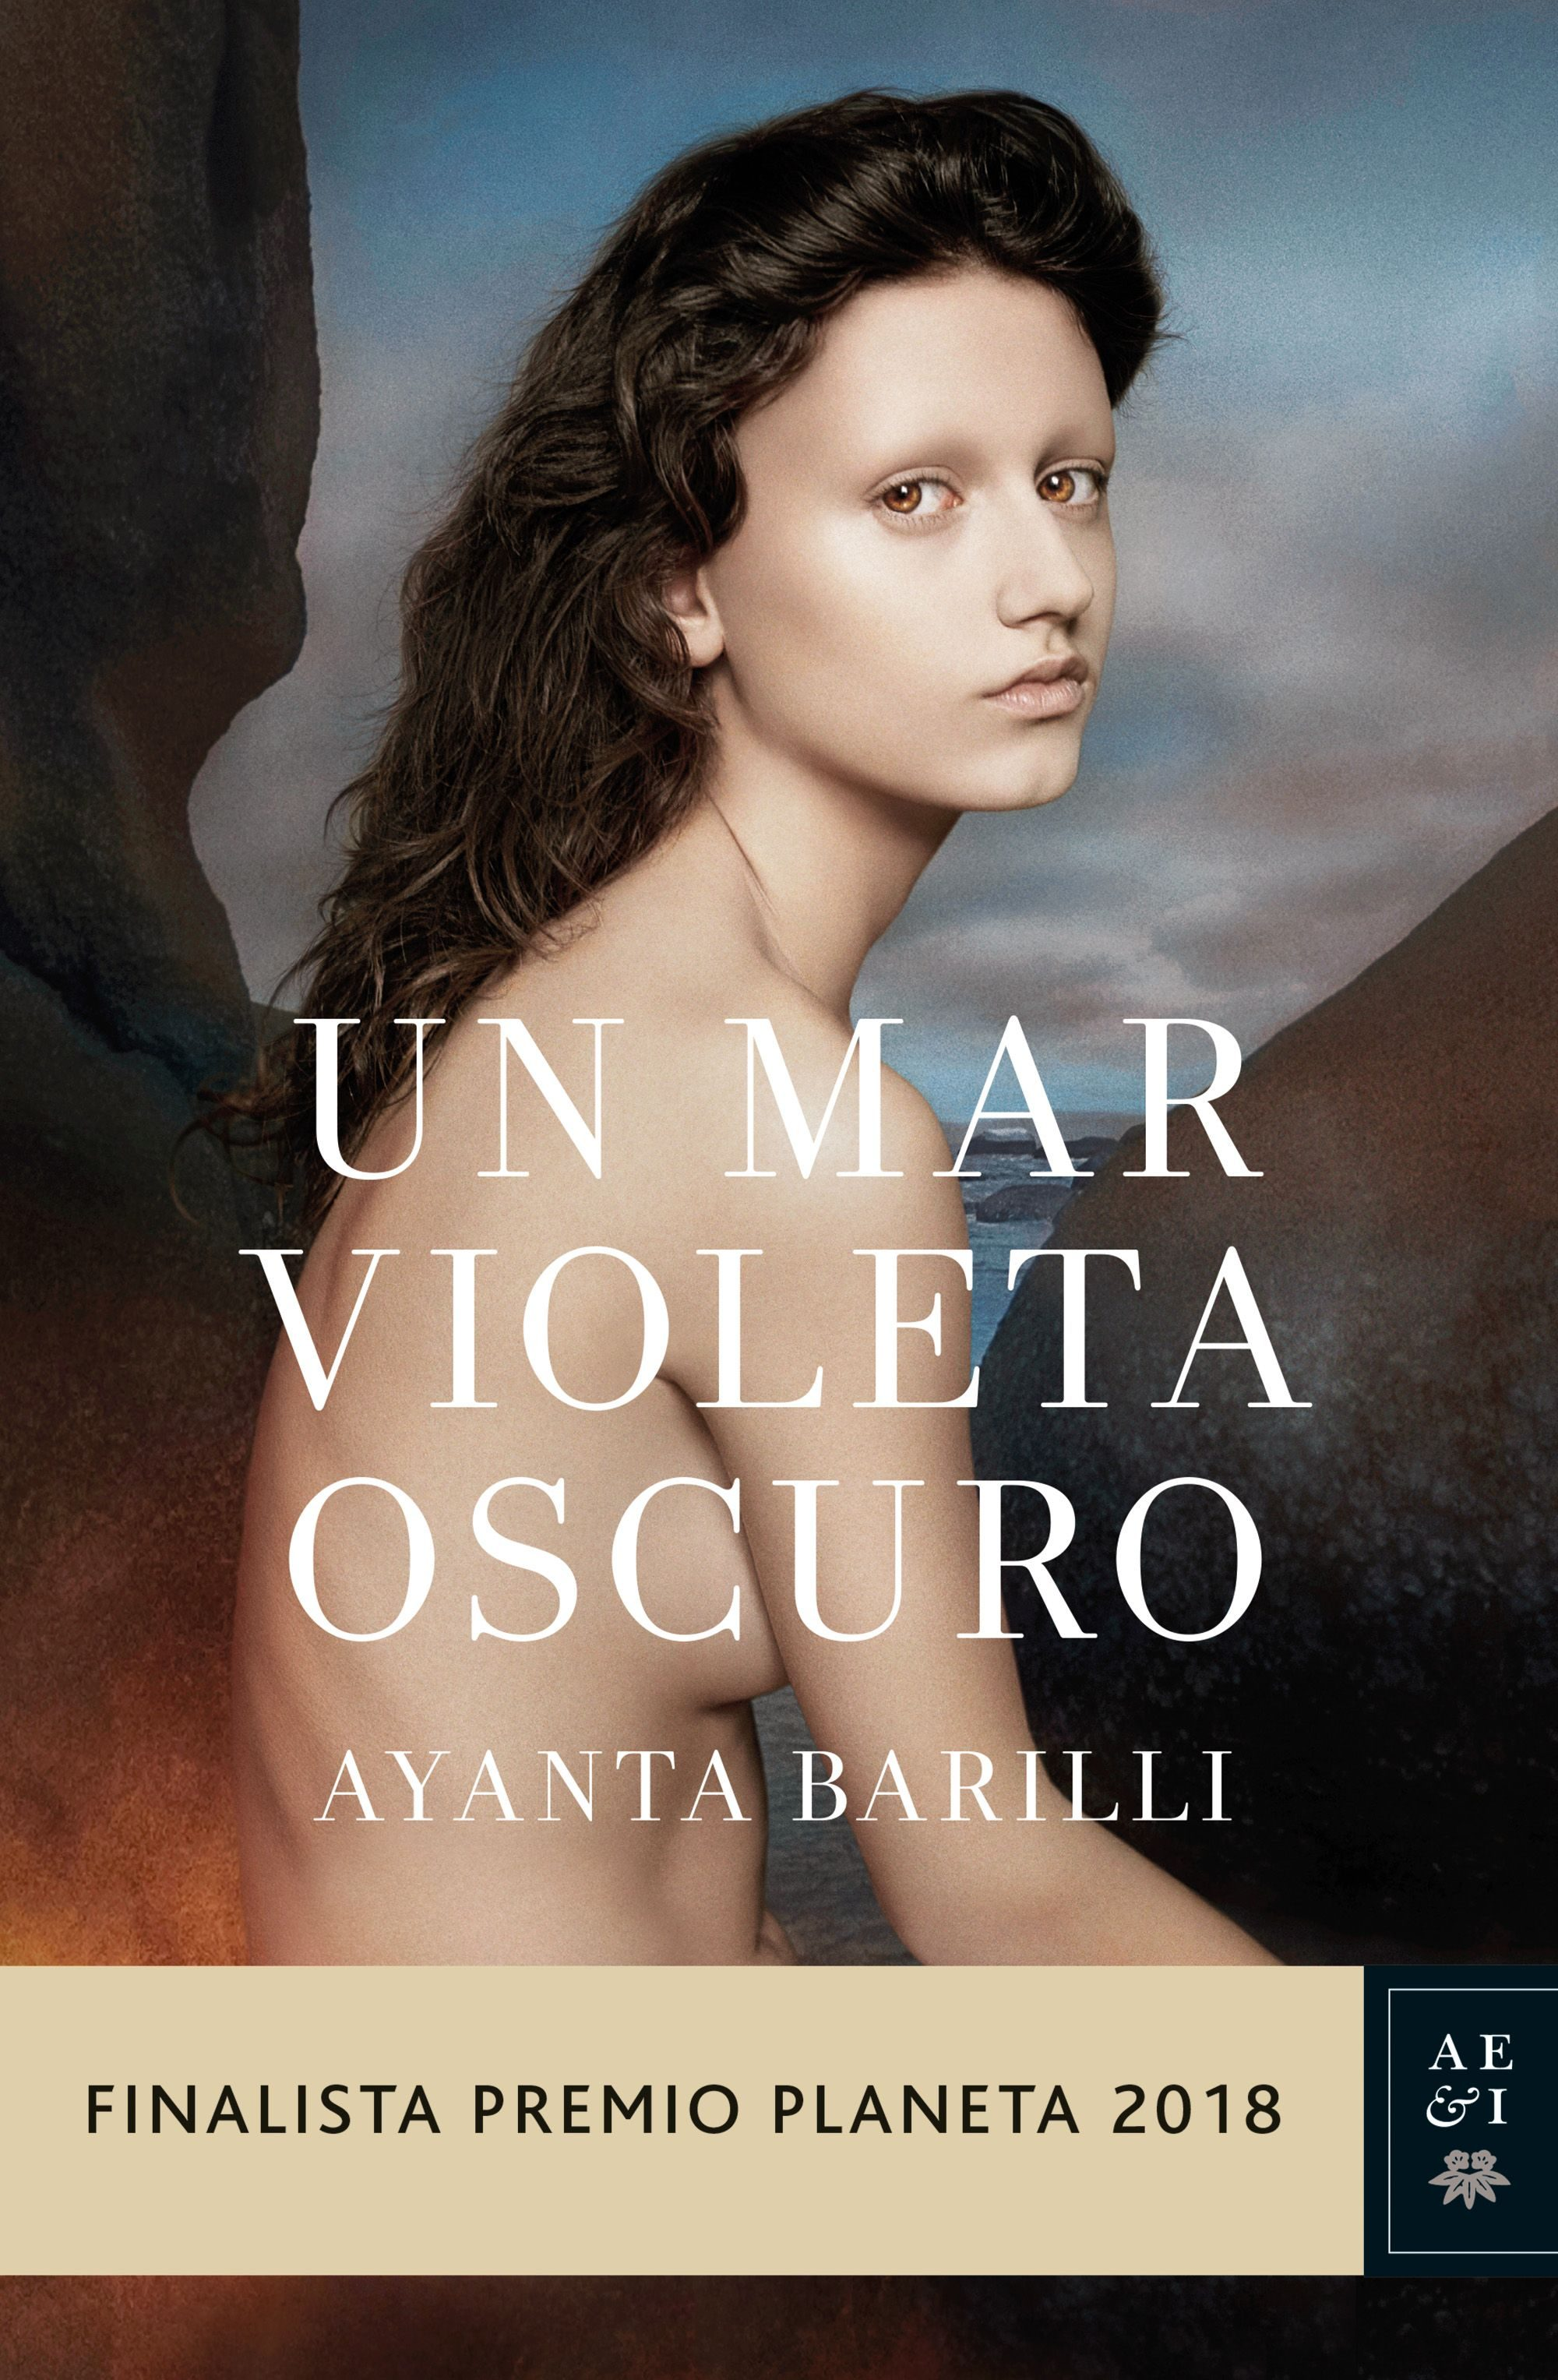 Un mar violeta oscuro Book Cover